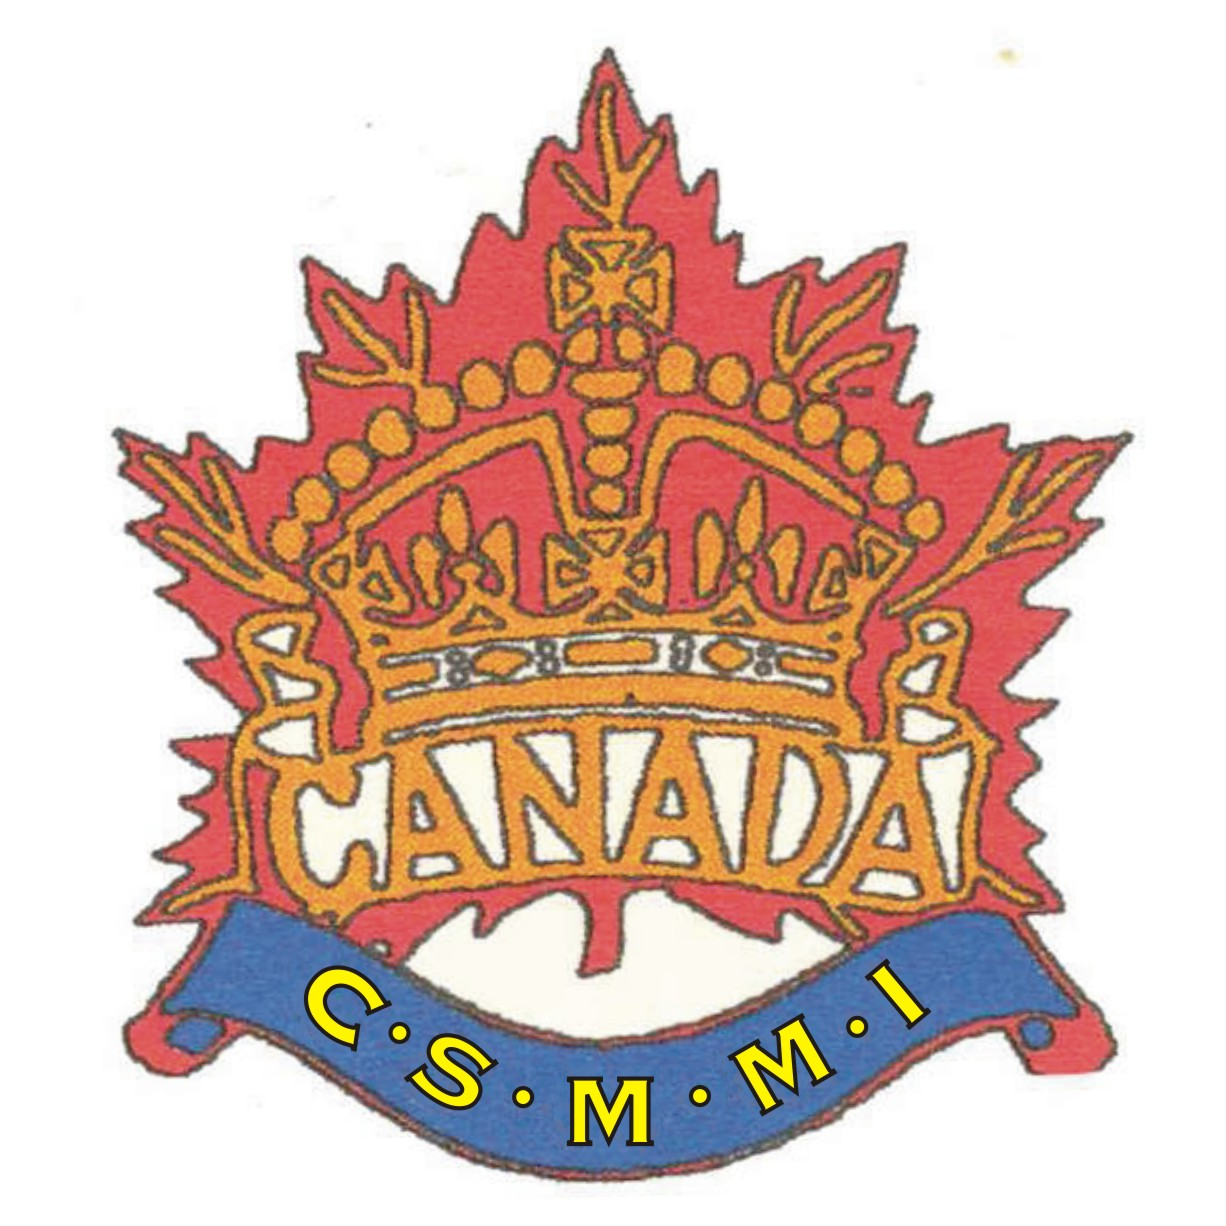 Canadian Society of Military Medals & Insignia